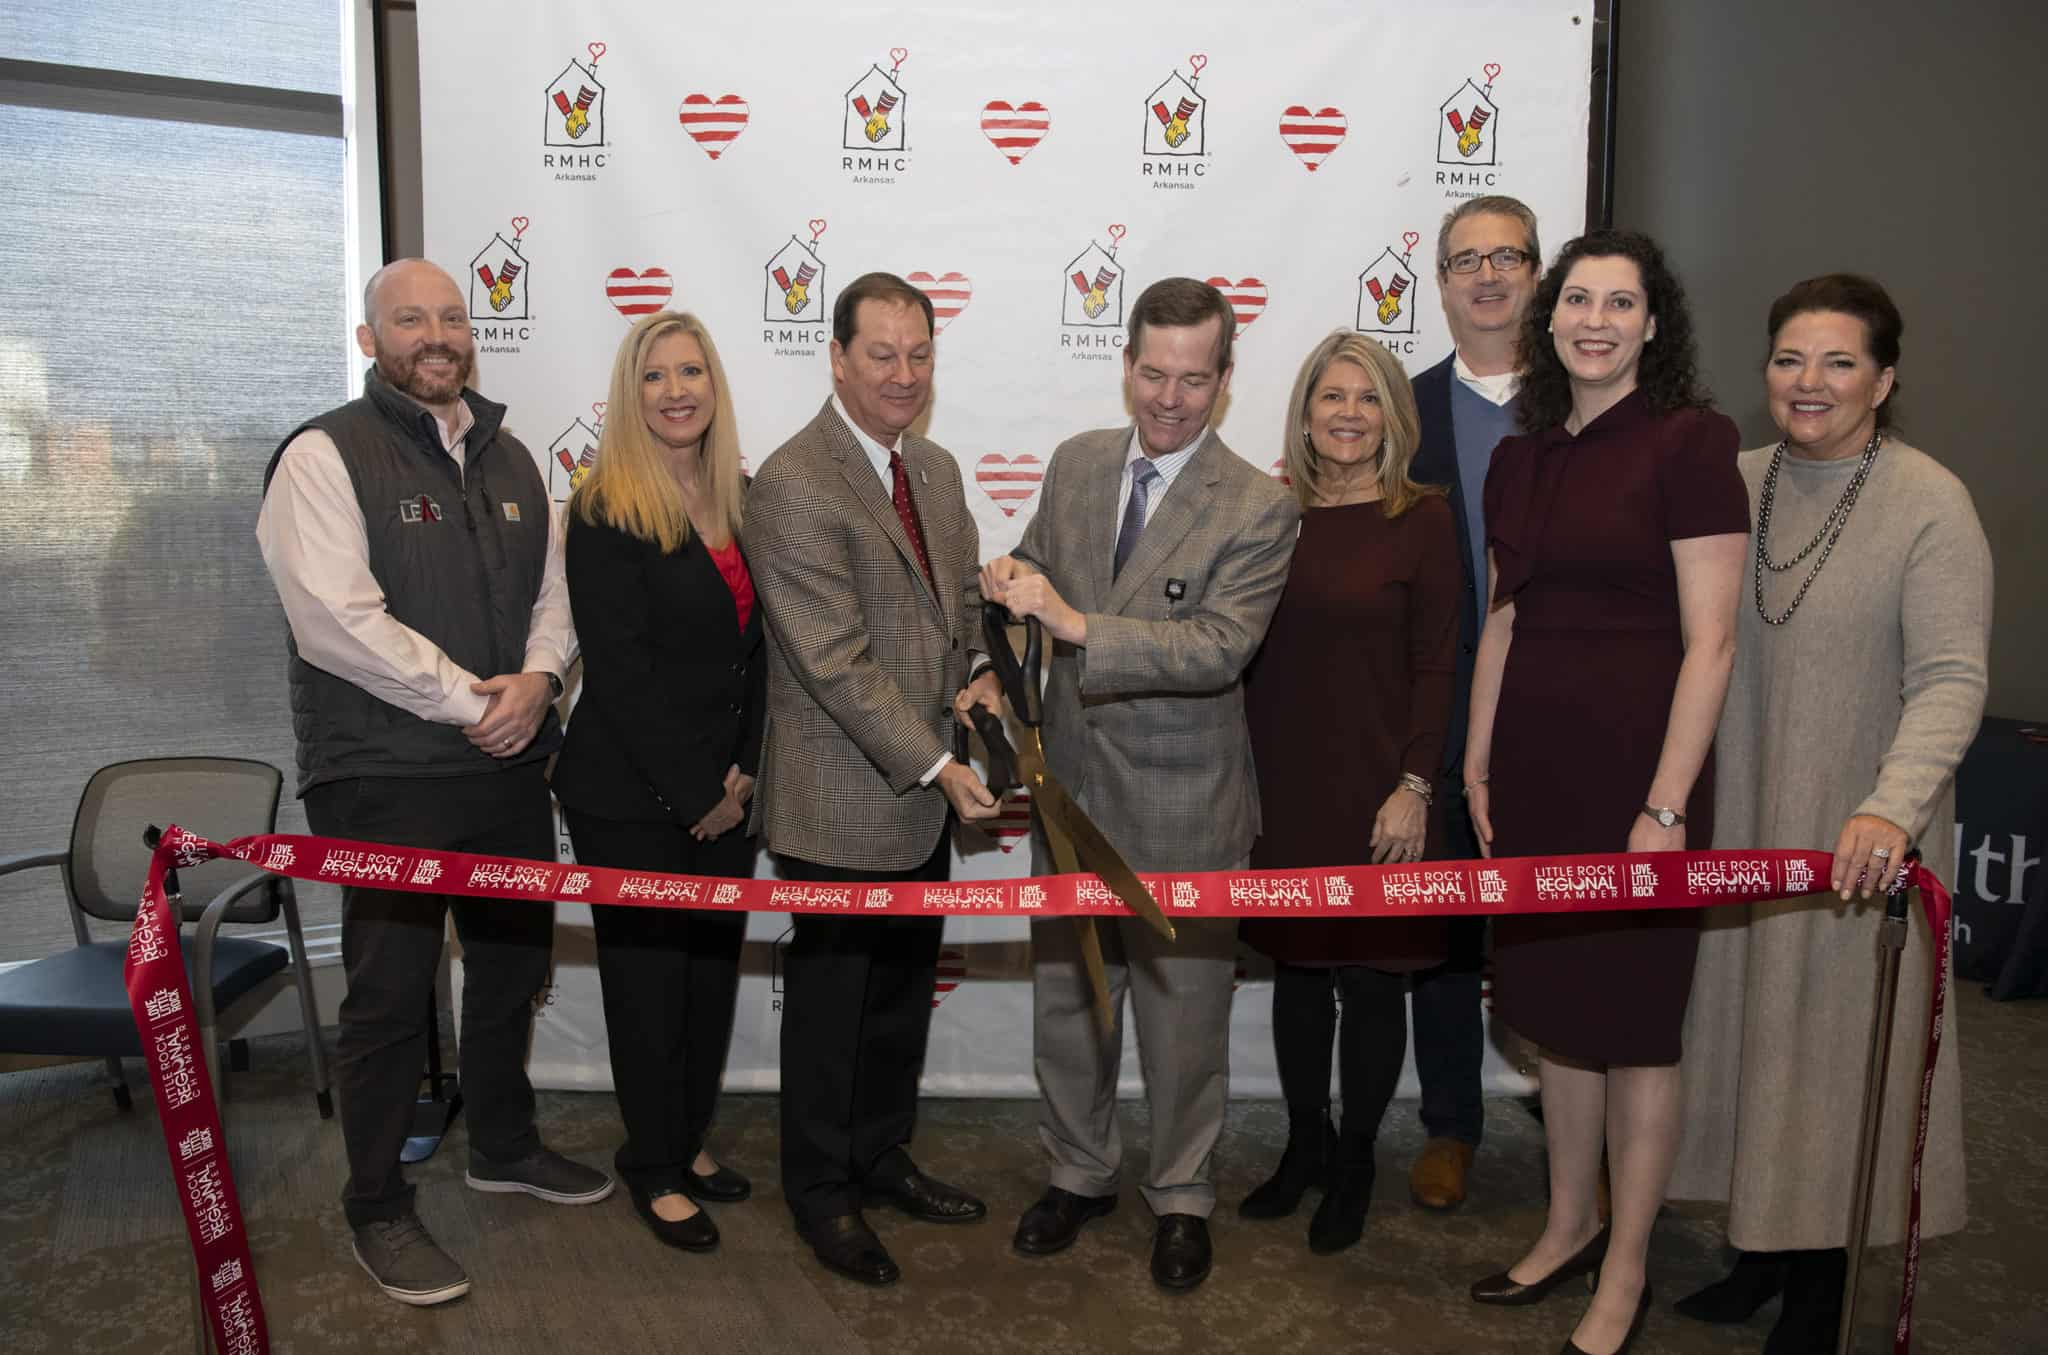 A grand opening celebration was held Jan. 31 for the new Ronald McDonald Family Room on the fifth floor of the Medical Center.